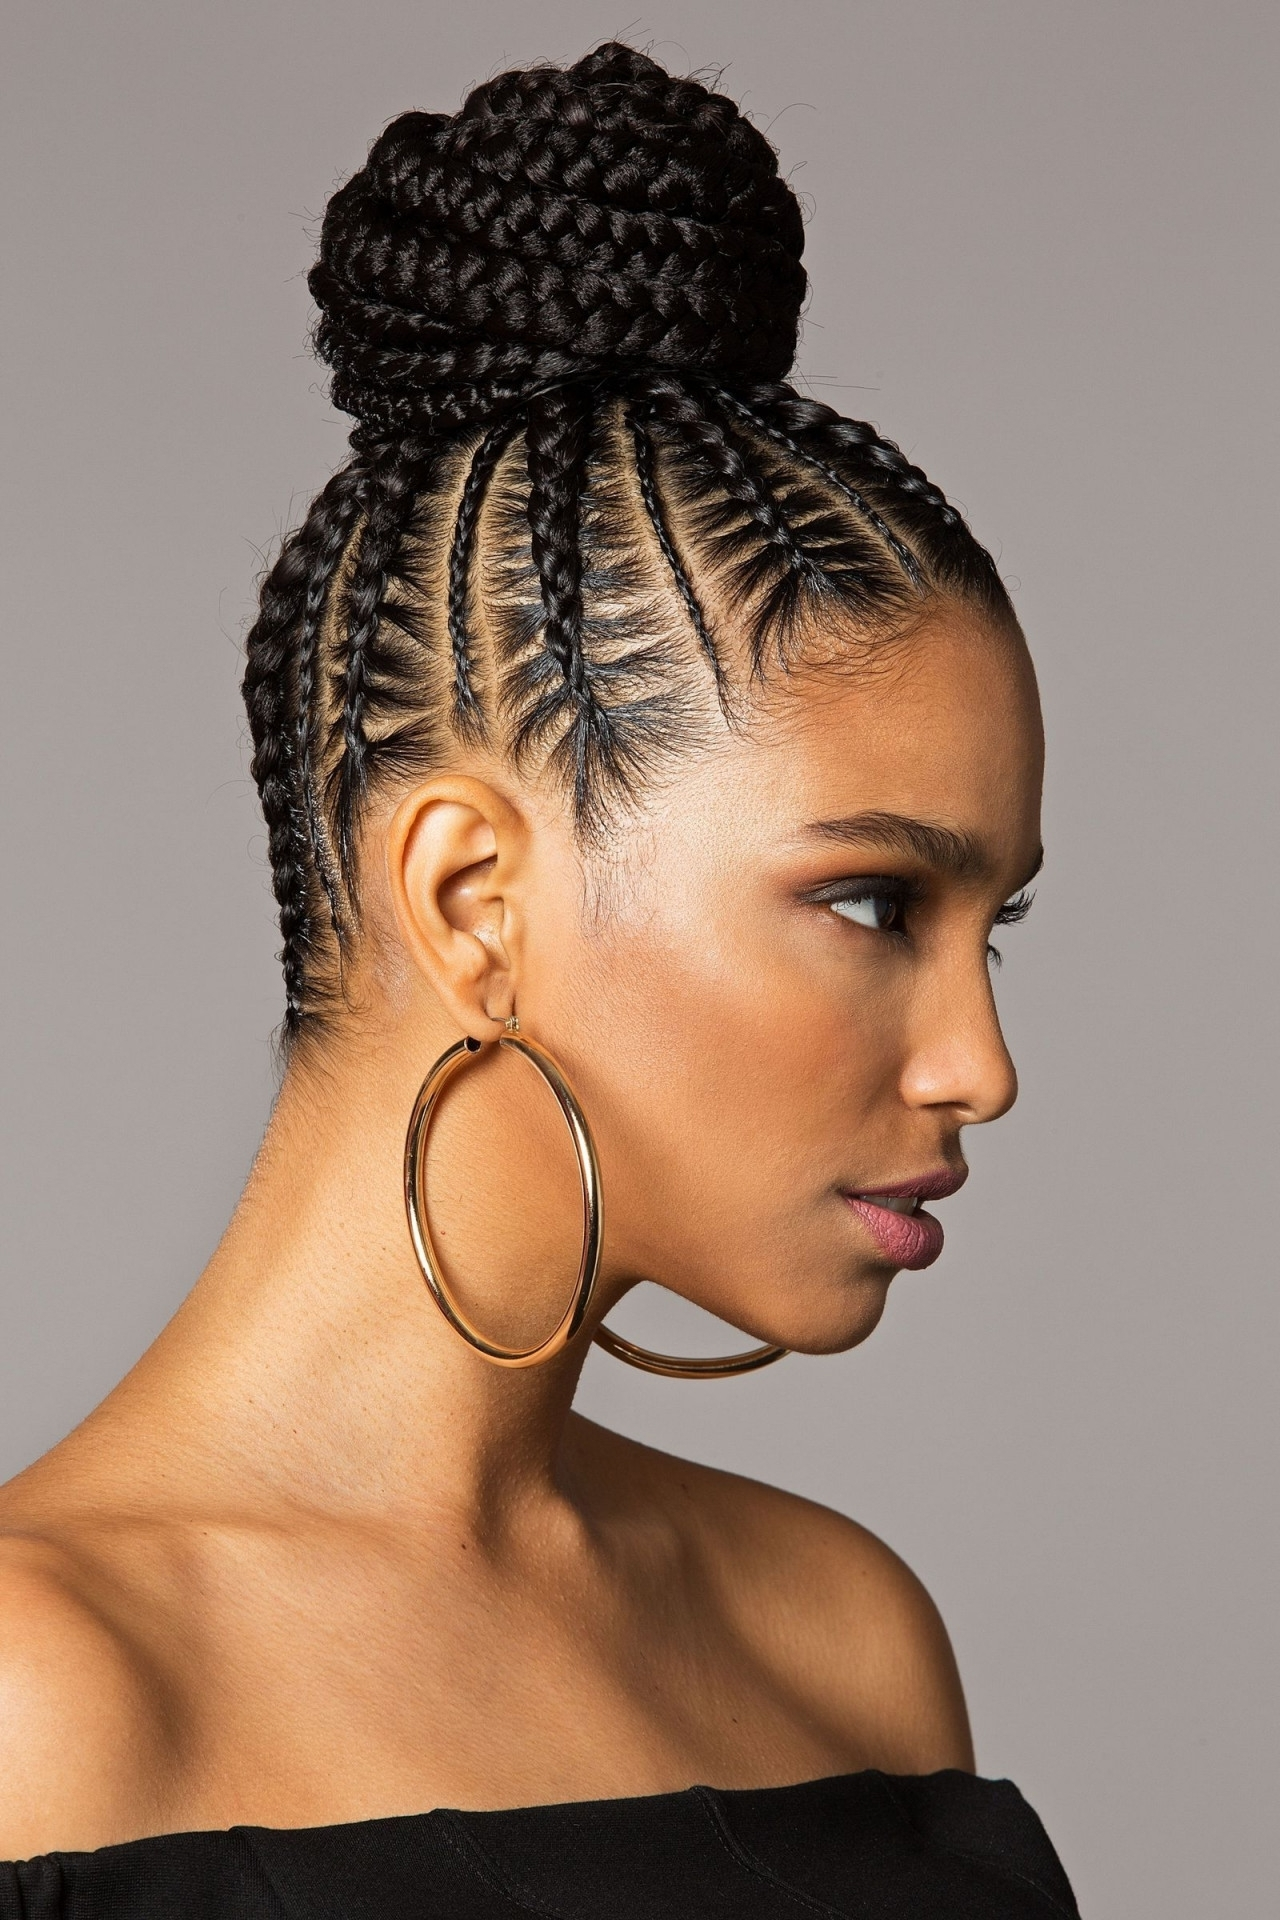 american hair braids styles 15 inspirations of american braided hairstyles 4367